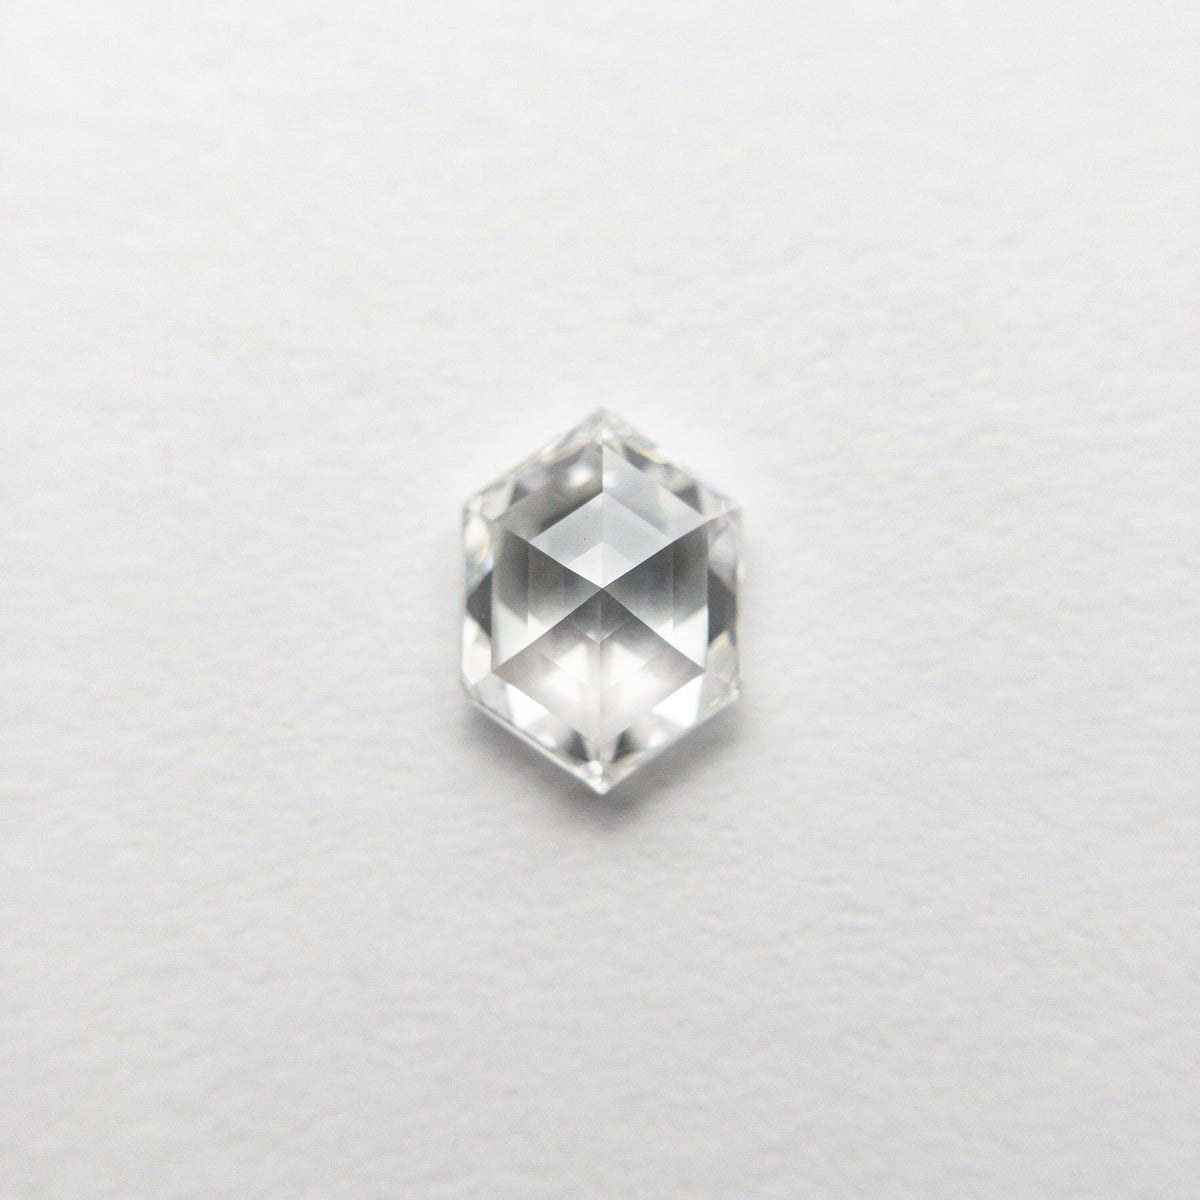 0.57ct 6.17x4.48x2.64mm VVS1 G Hexagon Rosecut 18458-06 🇷🇺